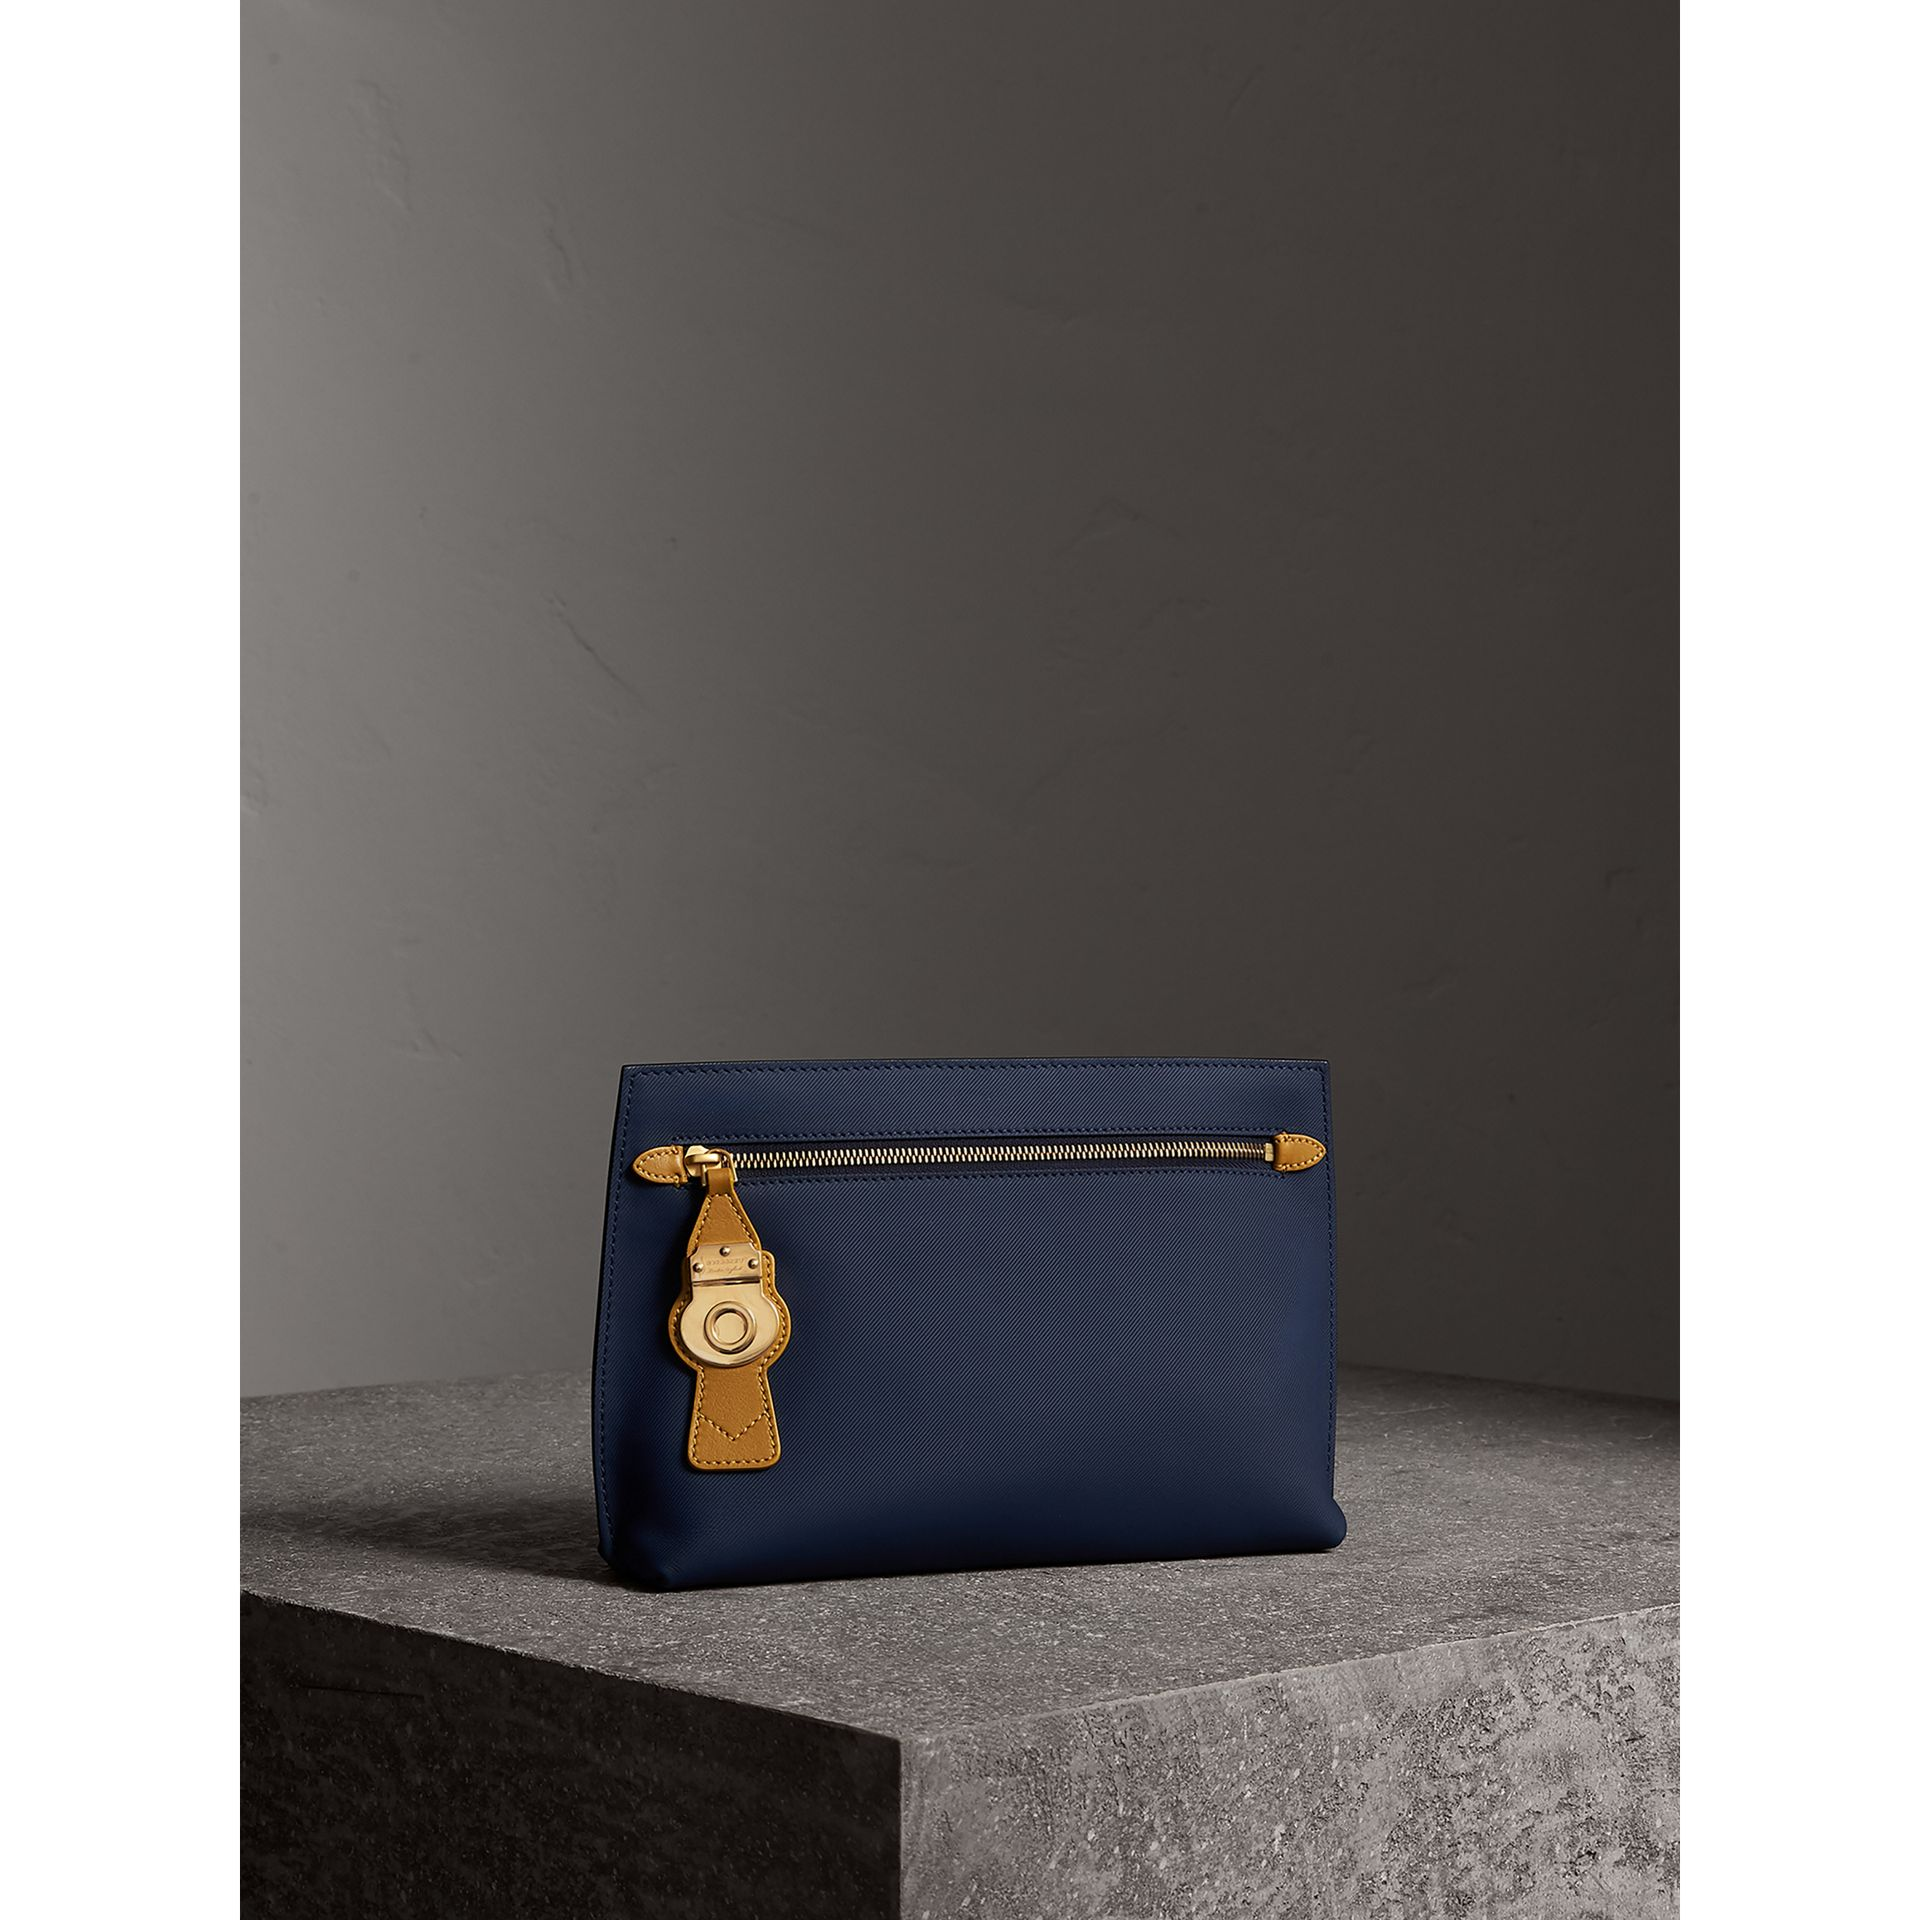 Two-tone Trench Leather Wristlet Pouch in Ink Blue/ochre Yellow - Women | Burberry - gallery image 6